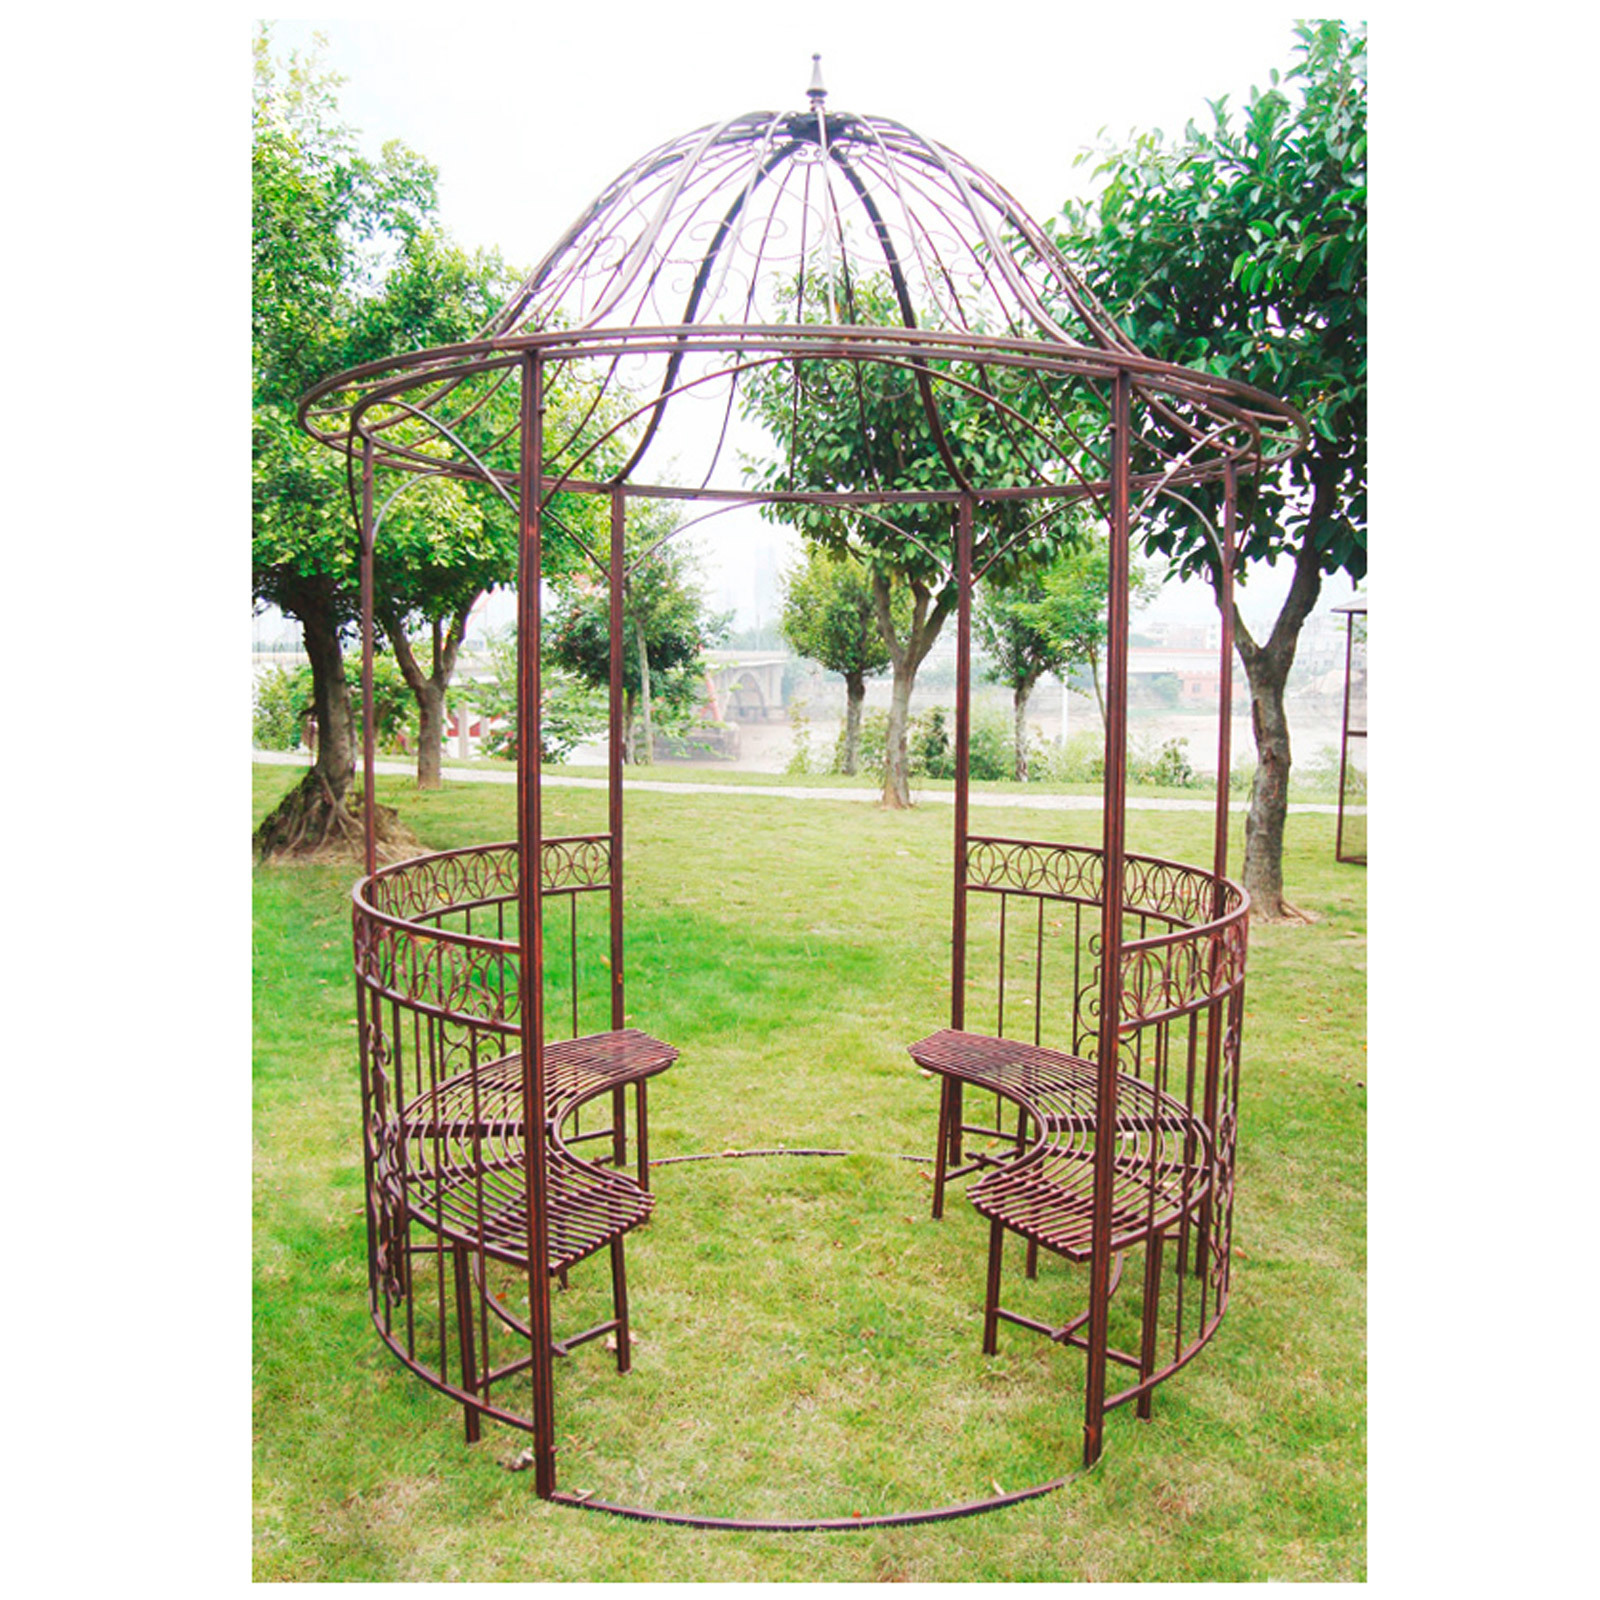 metall pavillon garten rosenpavillon rankgitter mit bank antik kupfer look ebay. Black Bedroom Furniture Sets. Home Design Ideas